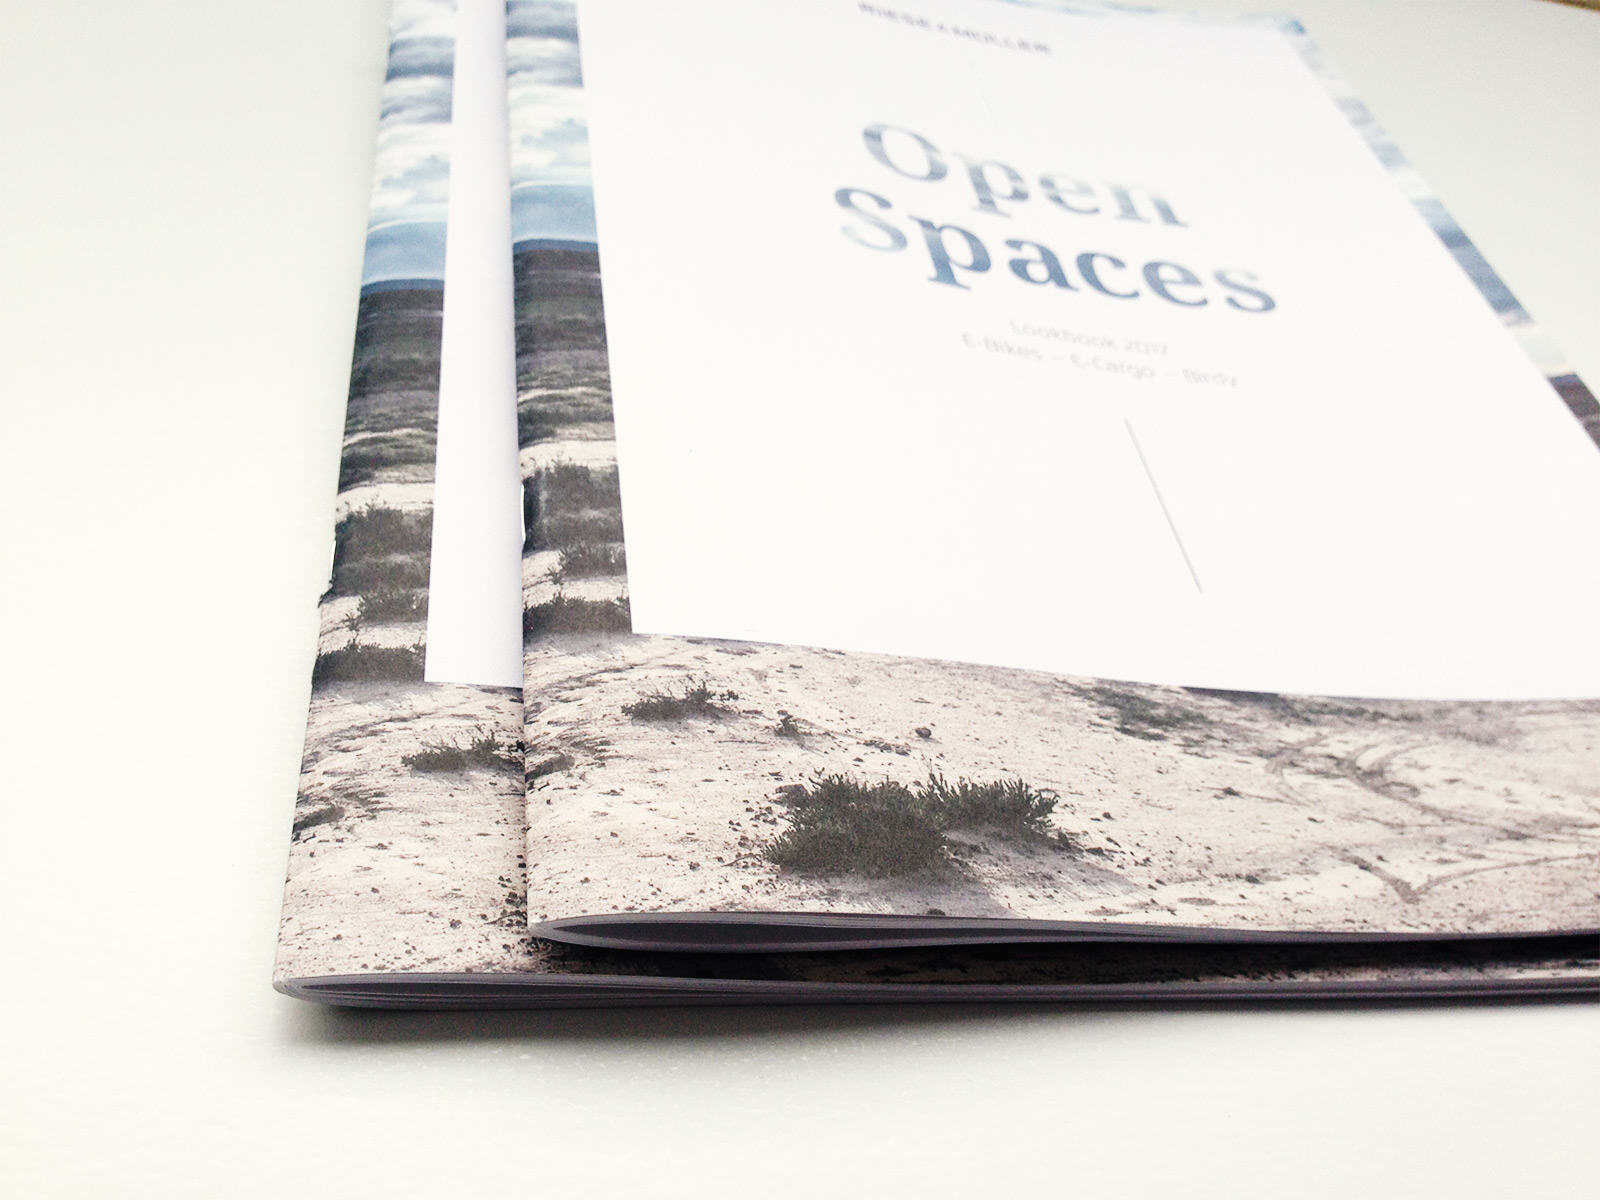 riese_mueller_open_spaces_17